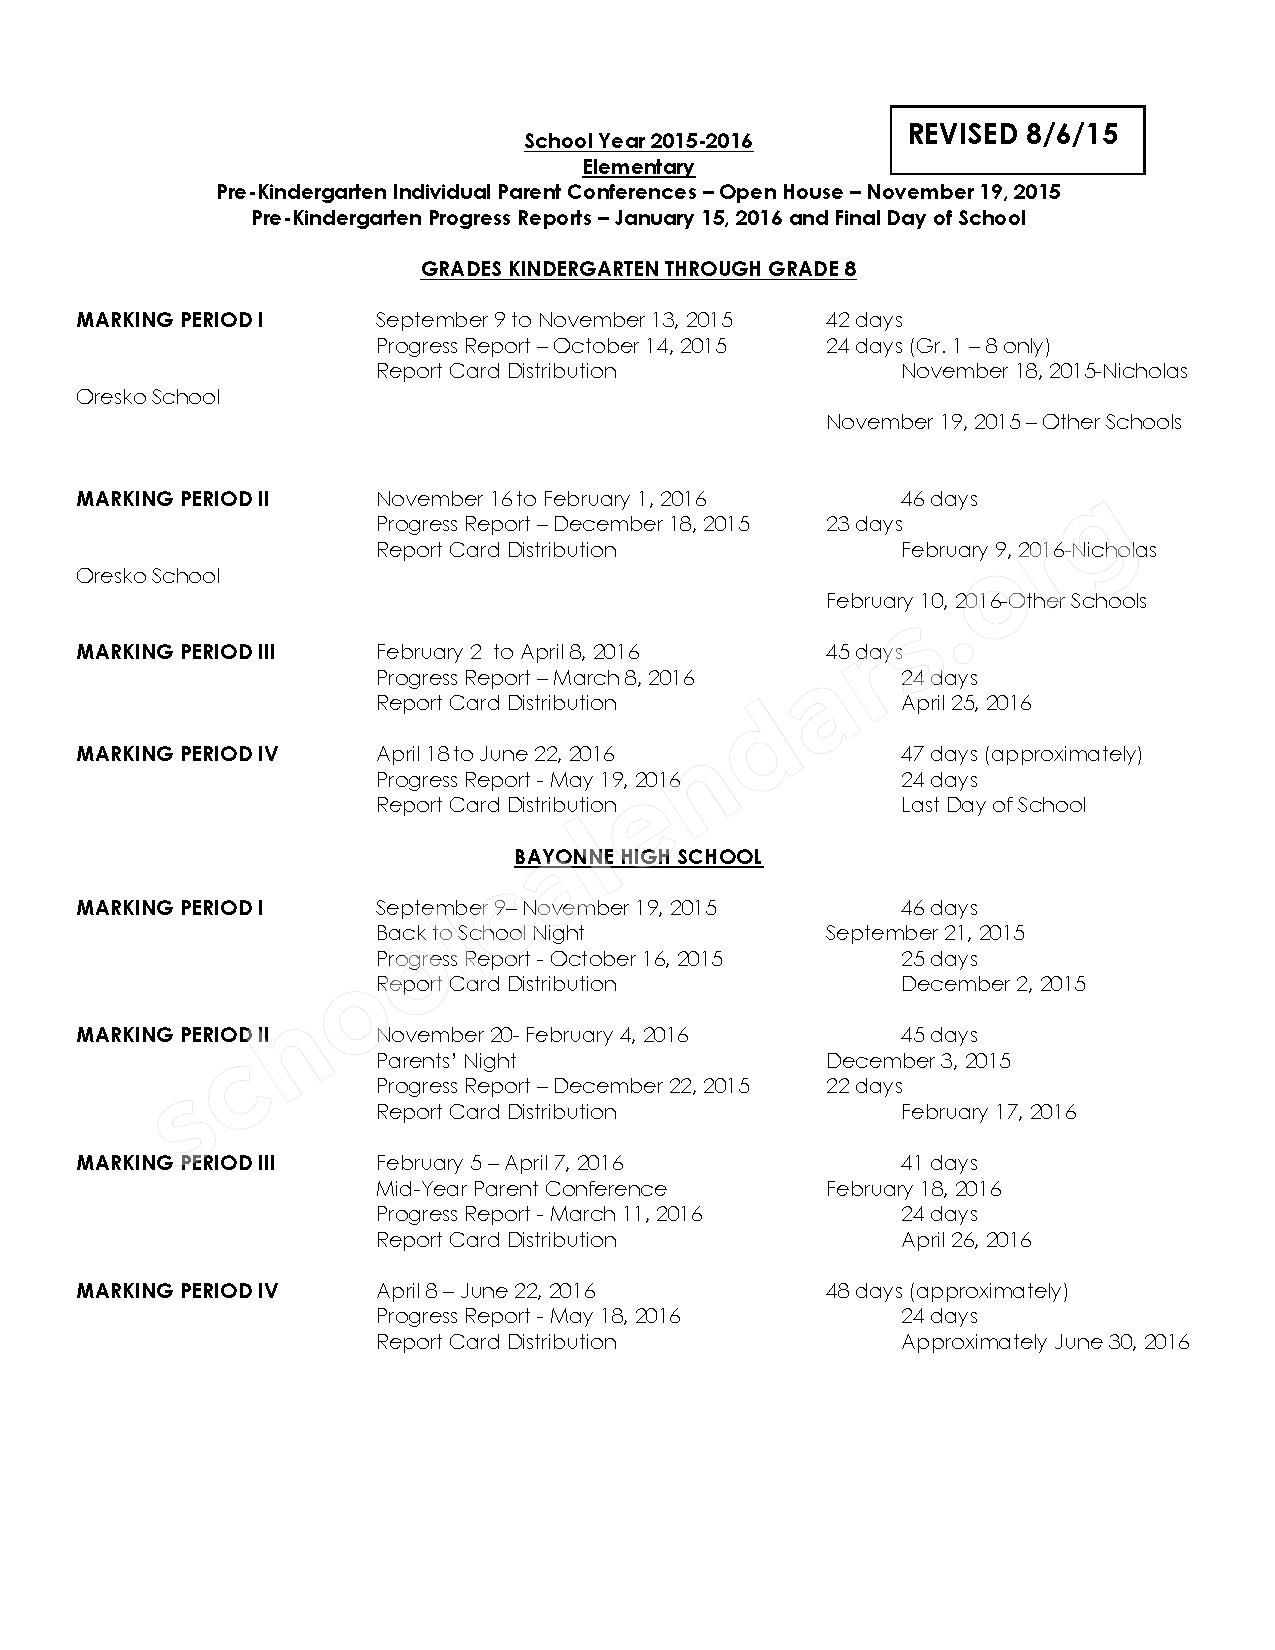 2015 - 2016 District Calendar – Bayonne Board of Education – page 2